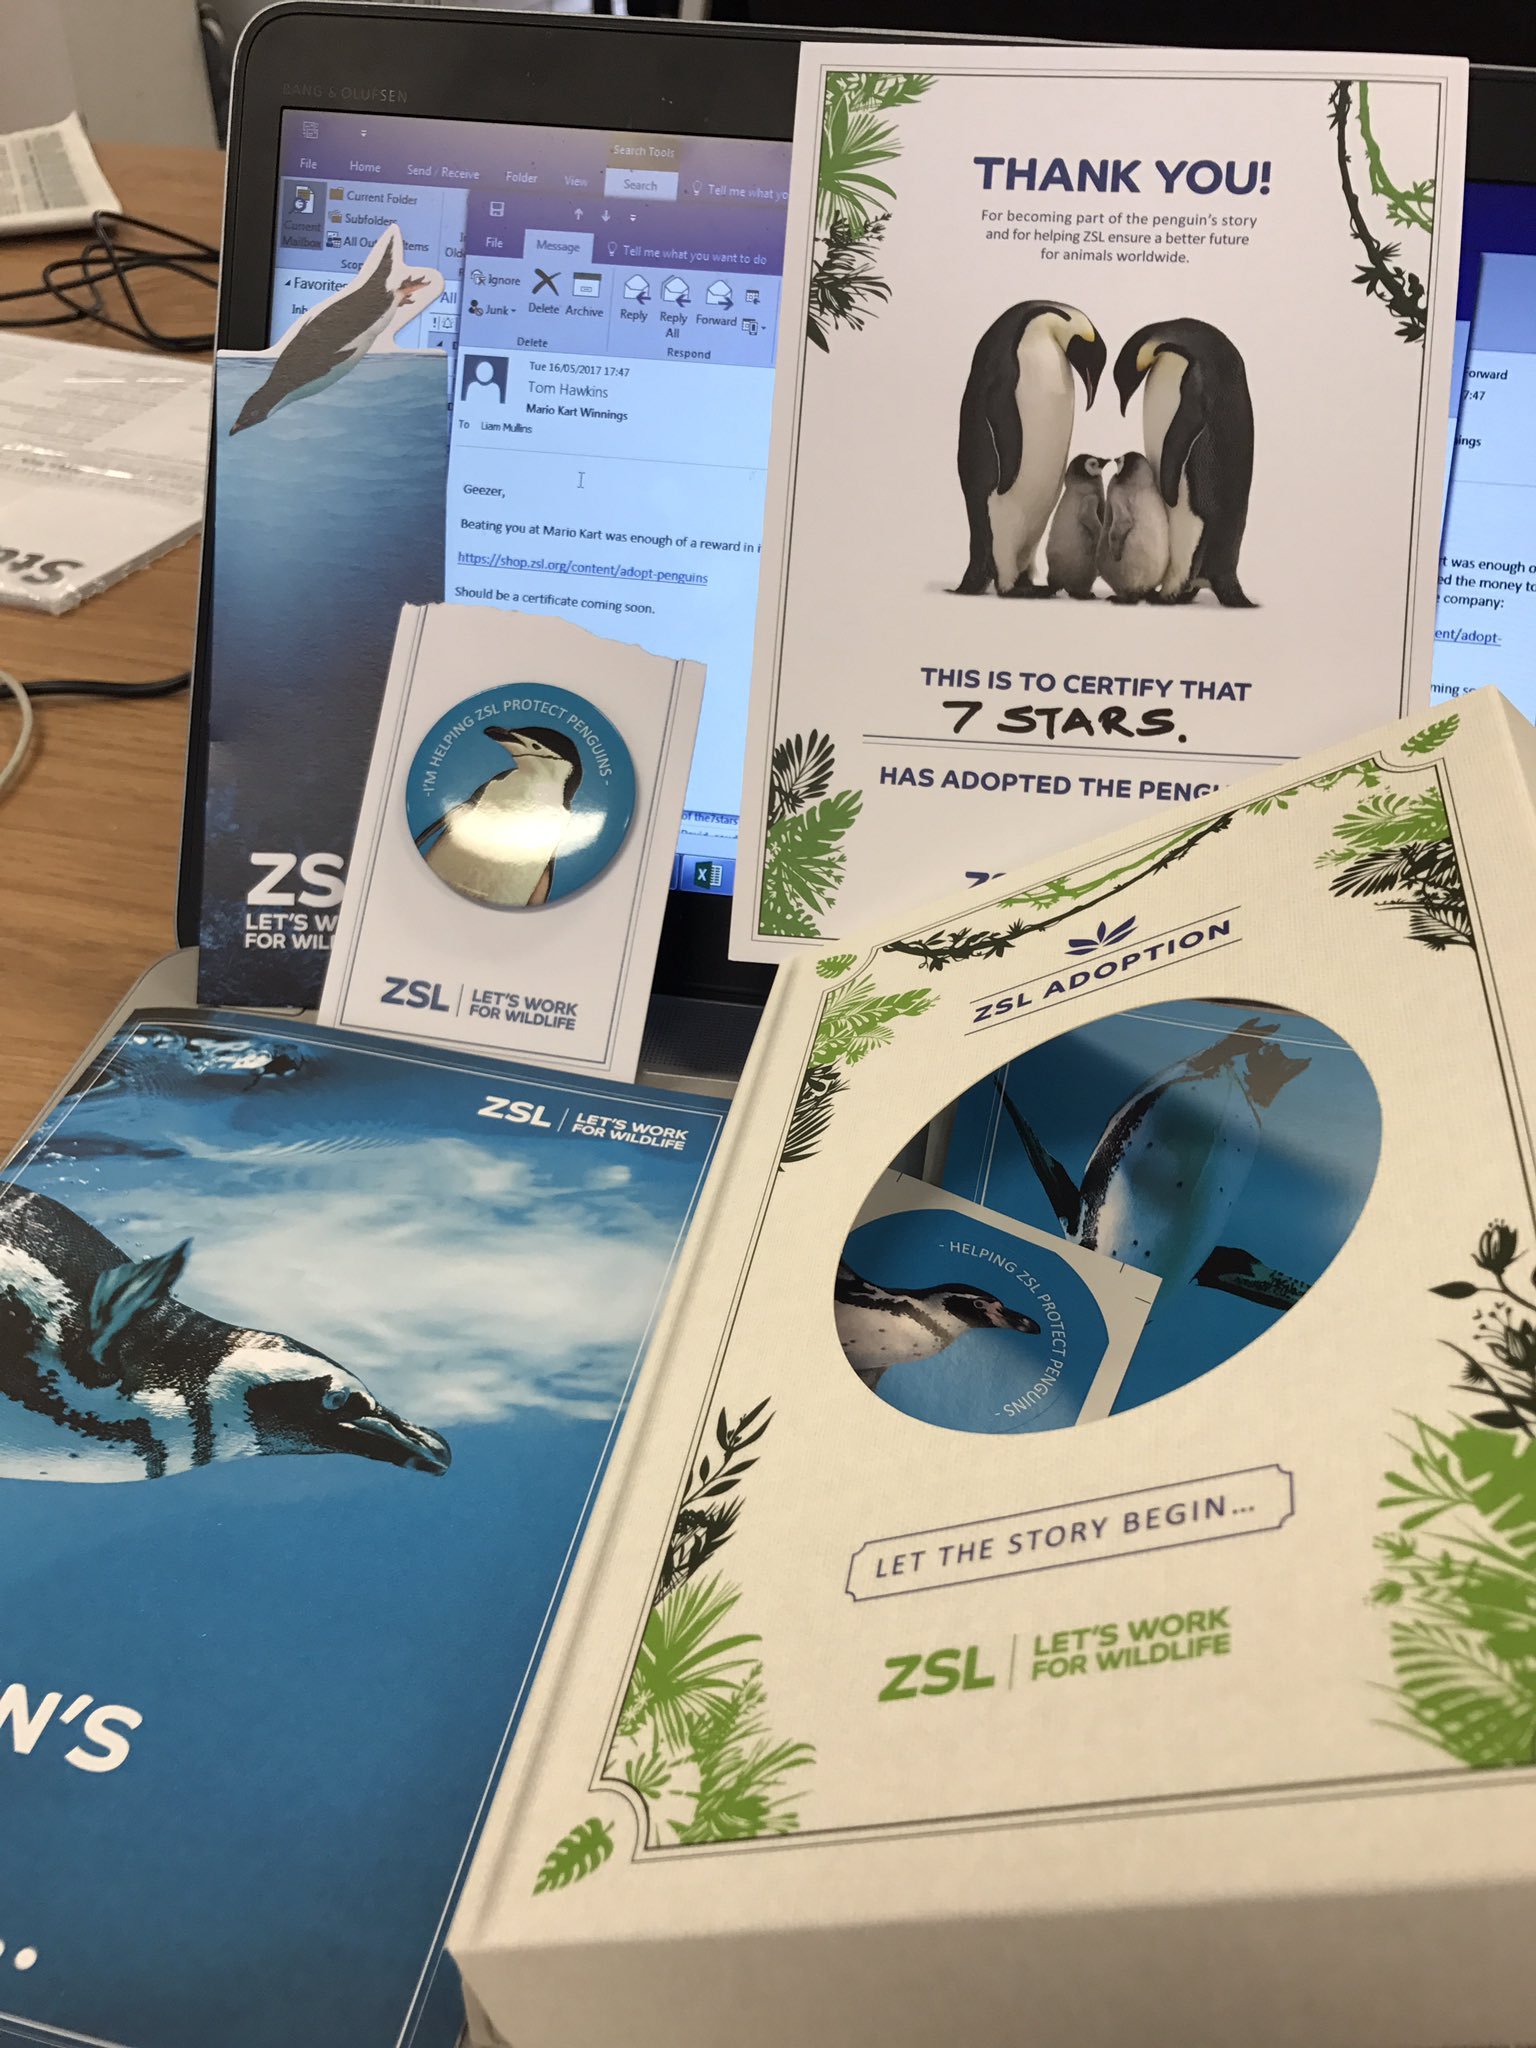 Thanks Tom Hawkins for our @zsllondonzoo penguin sponsorship. A trip to the zoo may be on the cards 😁 https://t.co/vG8TcJtBjq